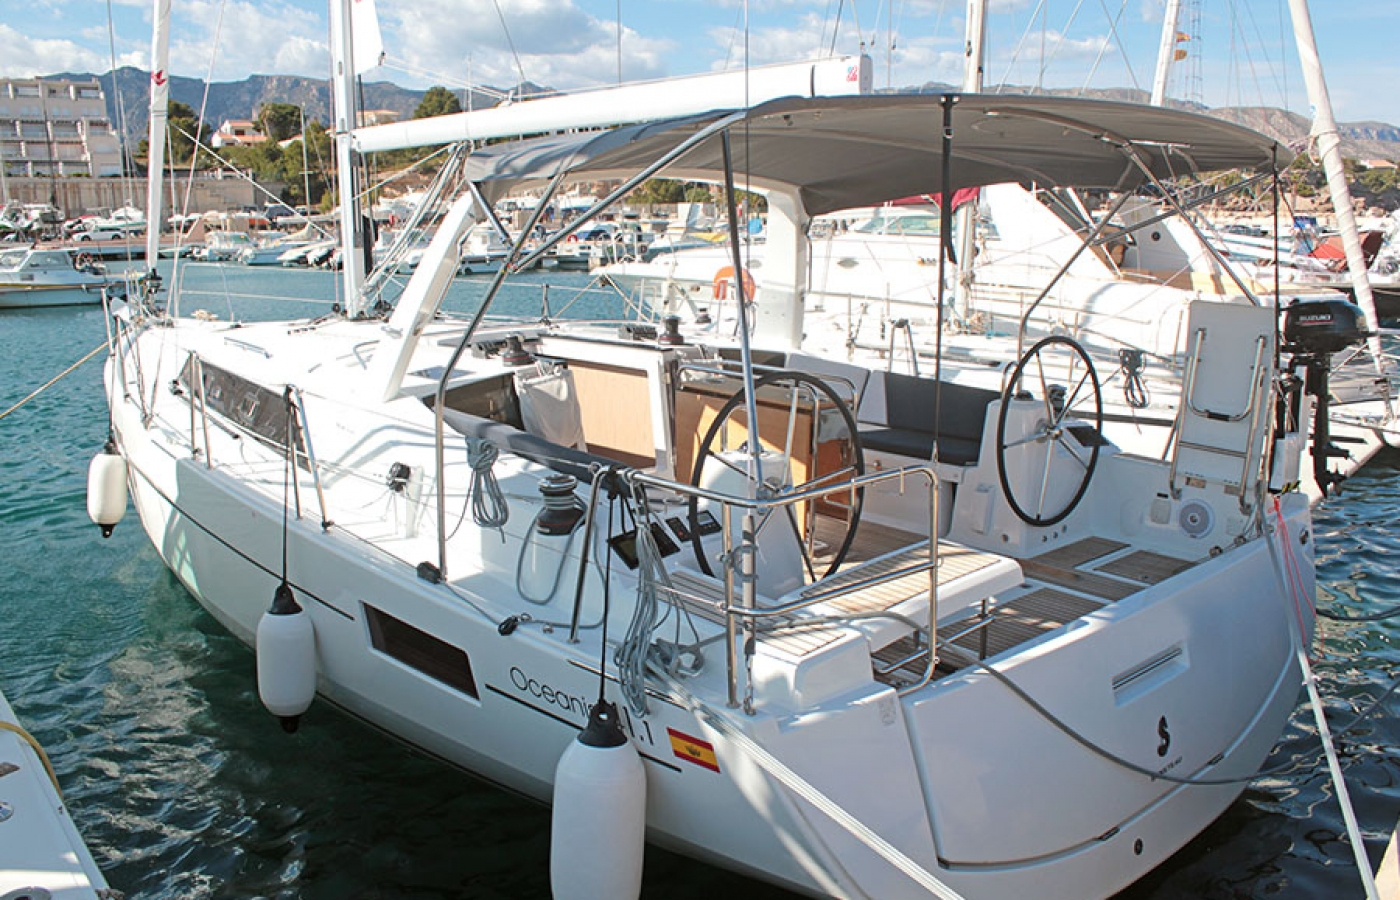 Beneteau Oceanis 41.1. IBIZA available to charter in the Balearic Islands